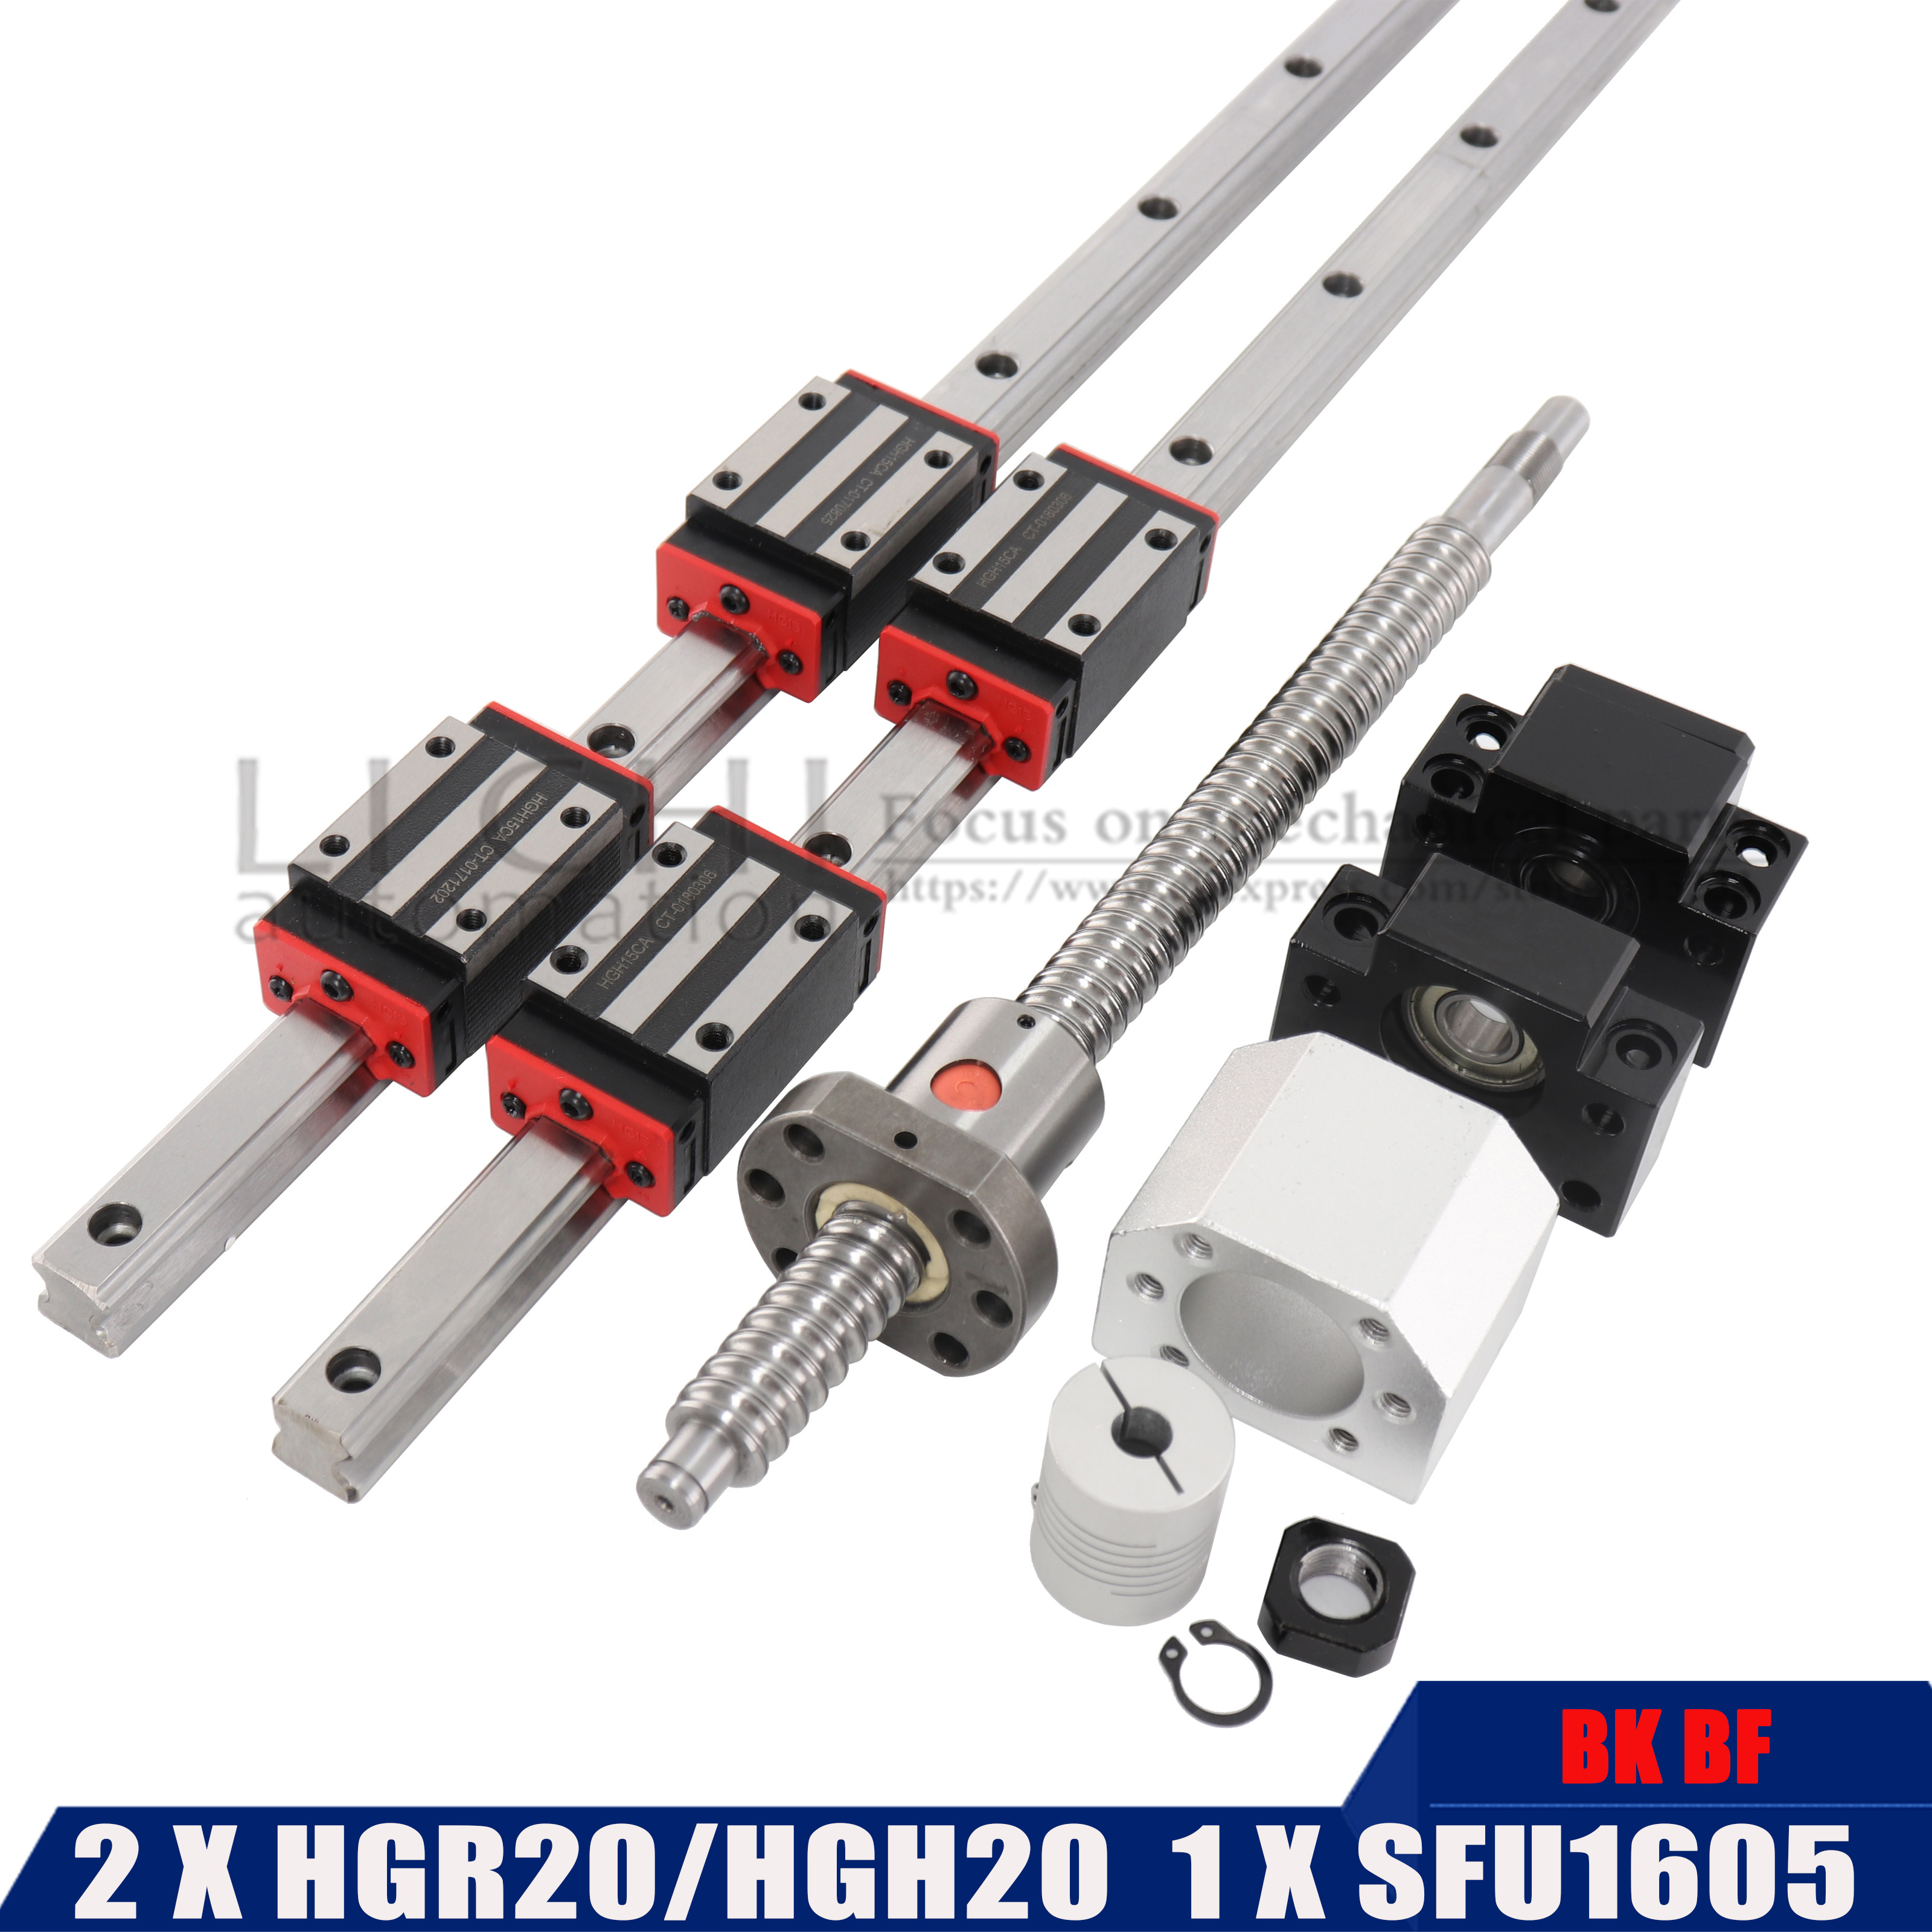 HGH20 L-1100MM 1150MM+1 SET <font><b>SFU1605</b></font>+<font><b>4</b></font> HGH20CA /hgw20cc BK BF Linear guide High assembly square load ball image